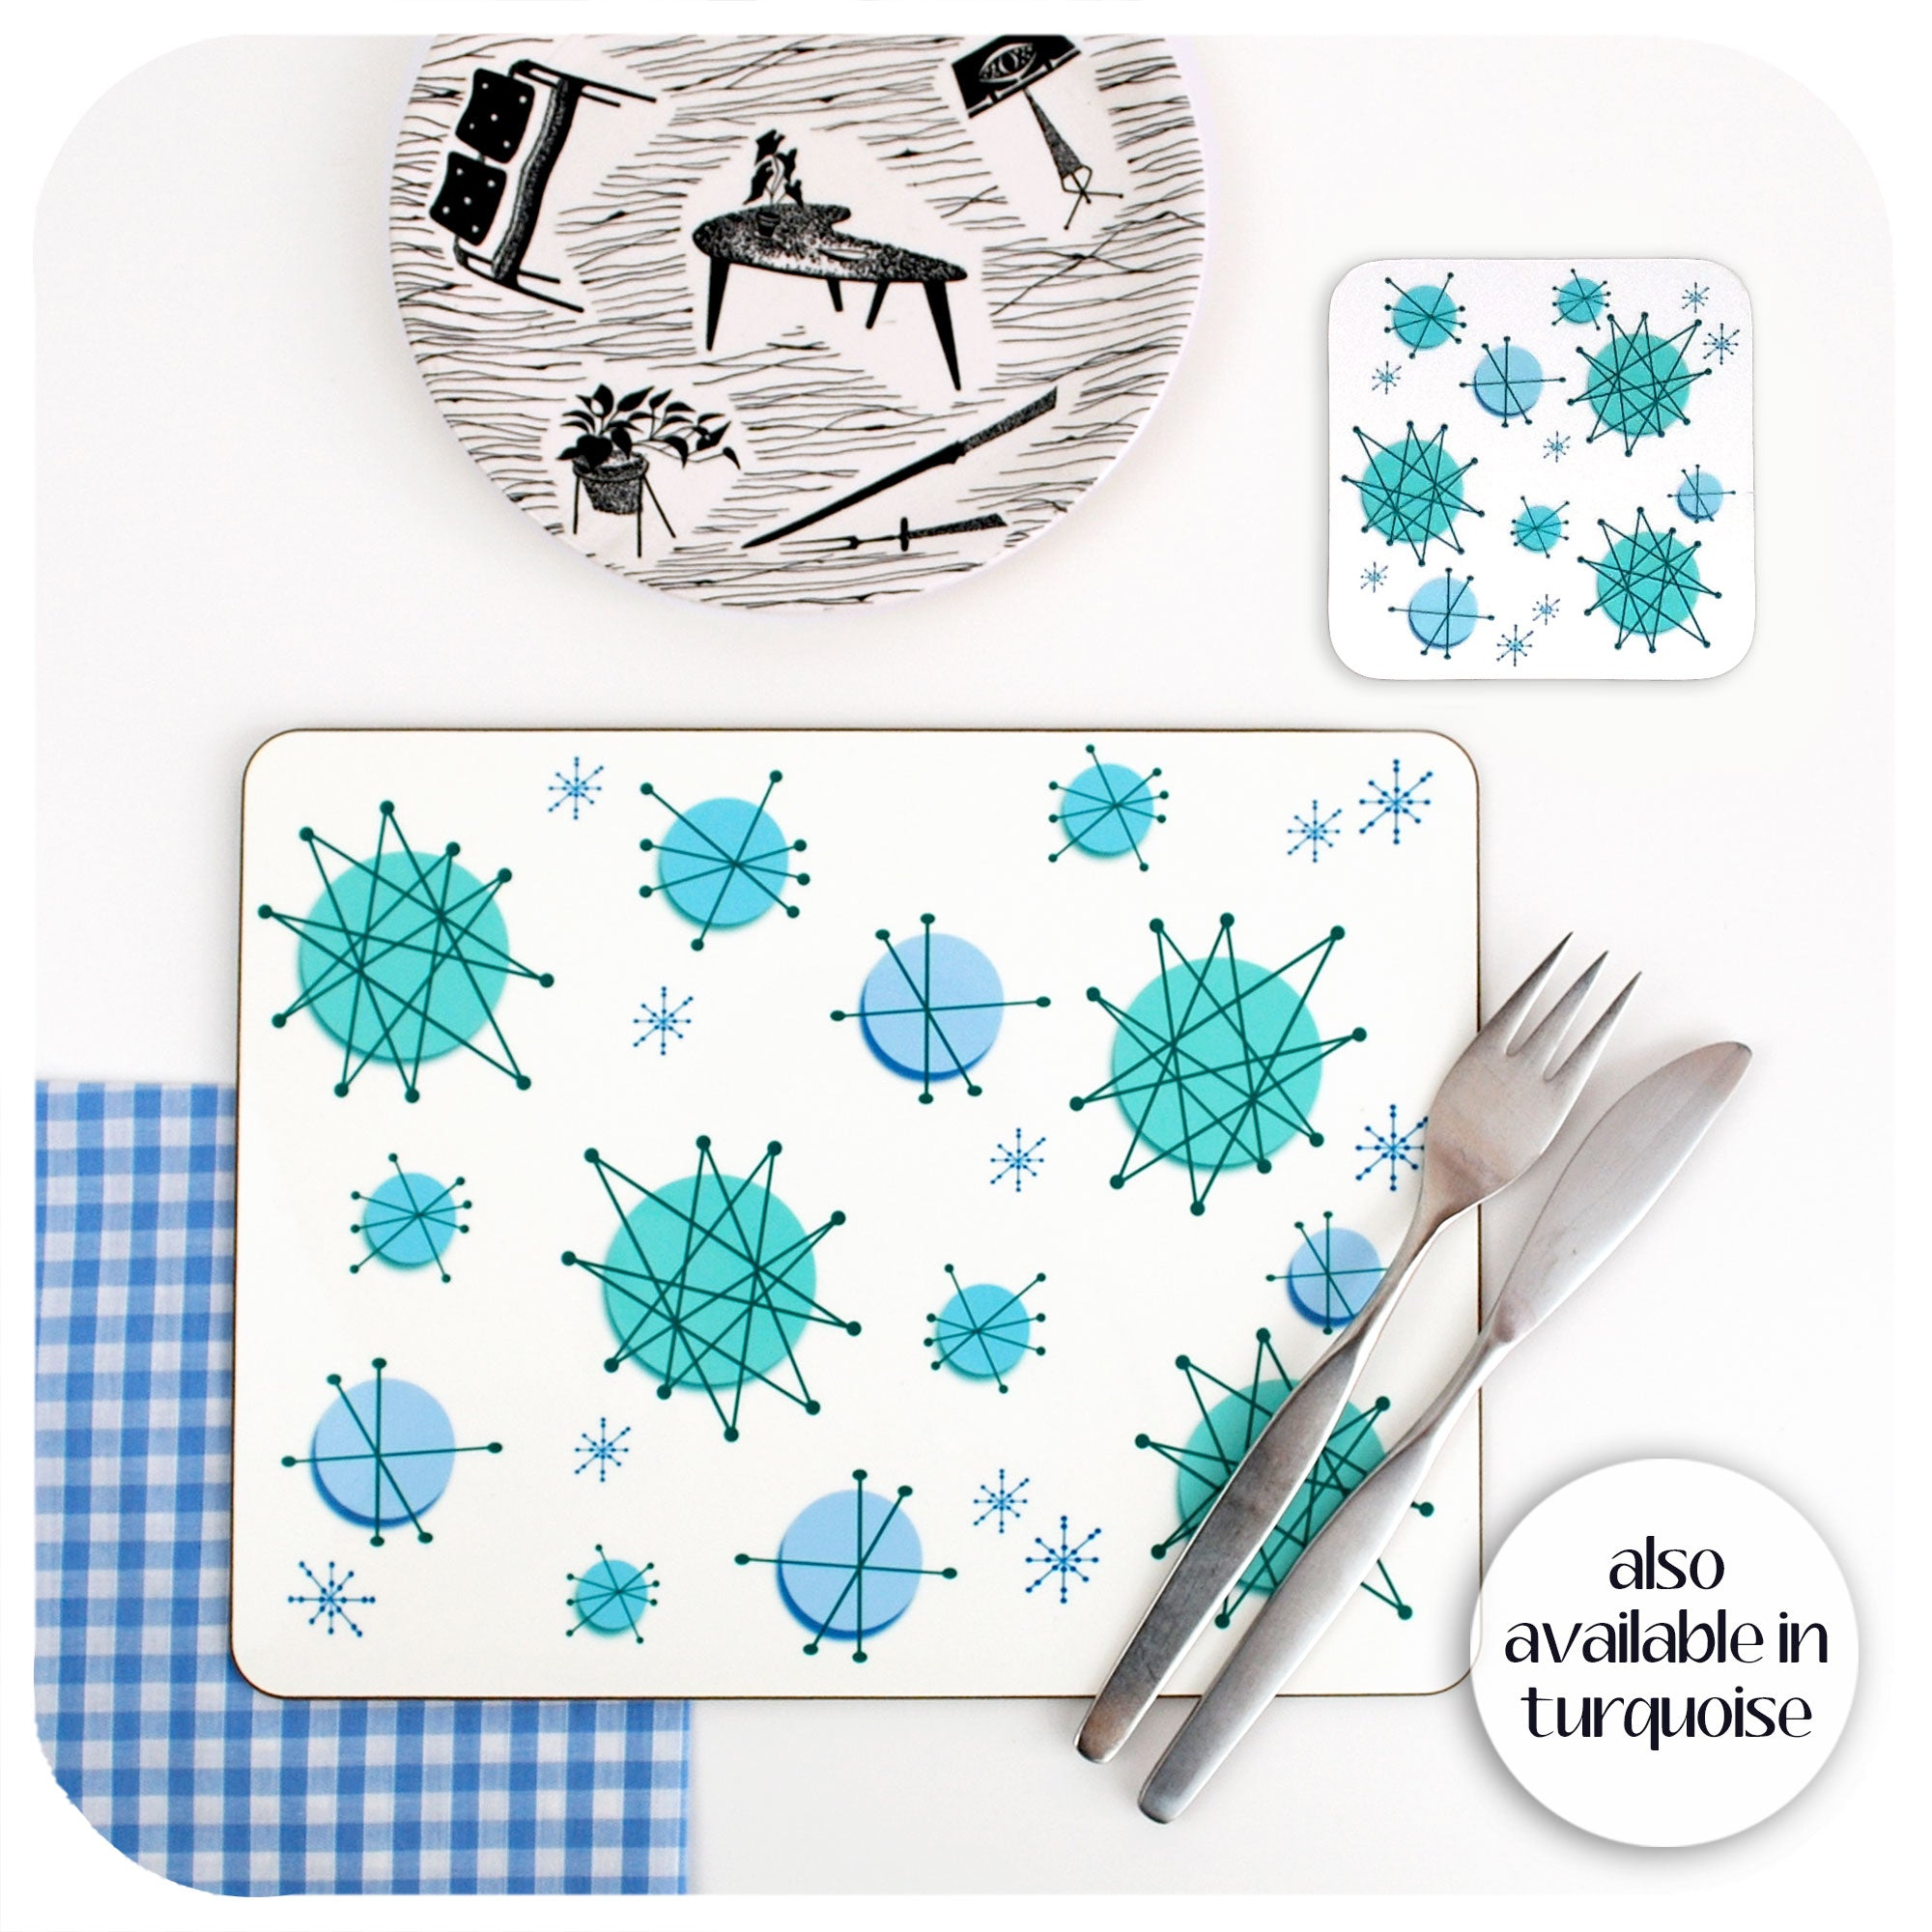 Atomic Starburst Placemats and coasters also available in classic 50s turquoise | The Inkabilly Emporium